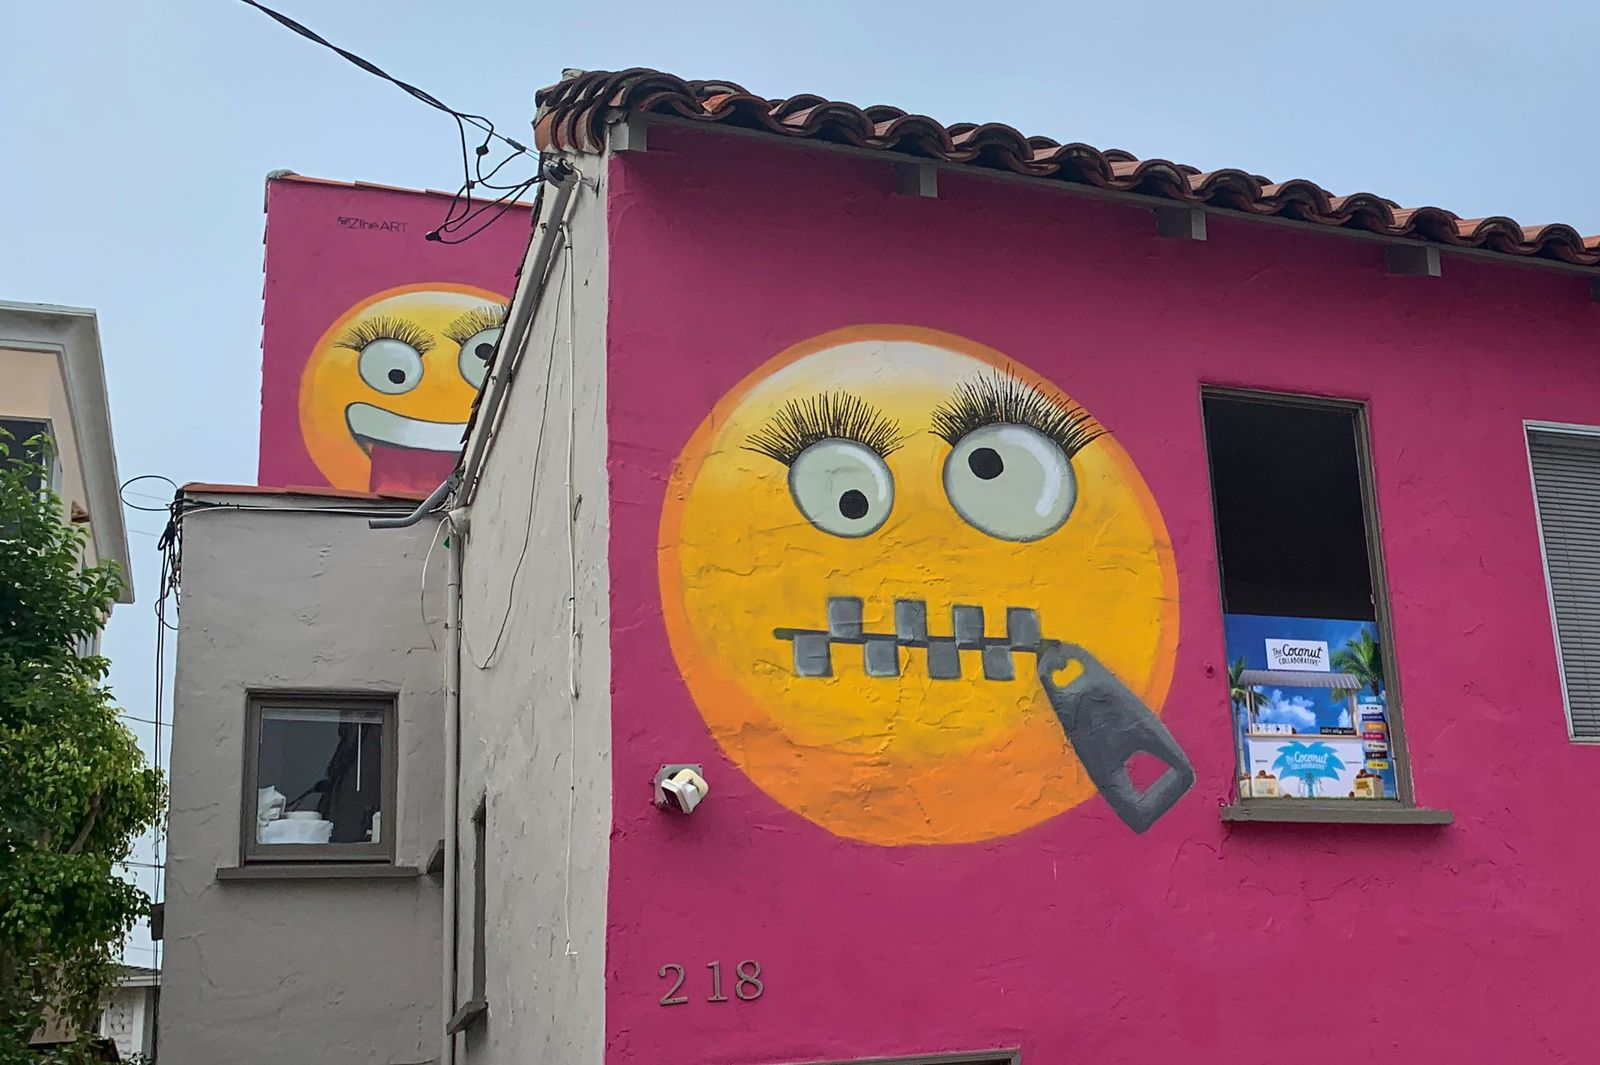 Painted emoji are seen on a house in Manhattan Beach, Calif. on Wednesday, Aug. 7, 2019.{ } (AP Photo/Natalie Rice)